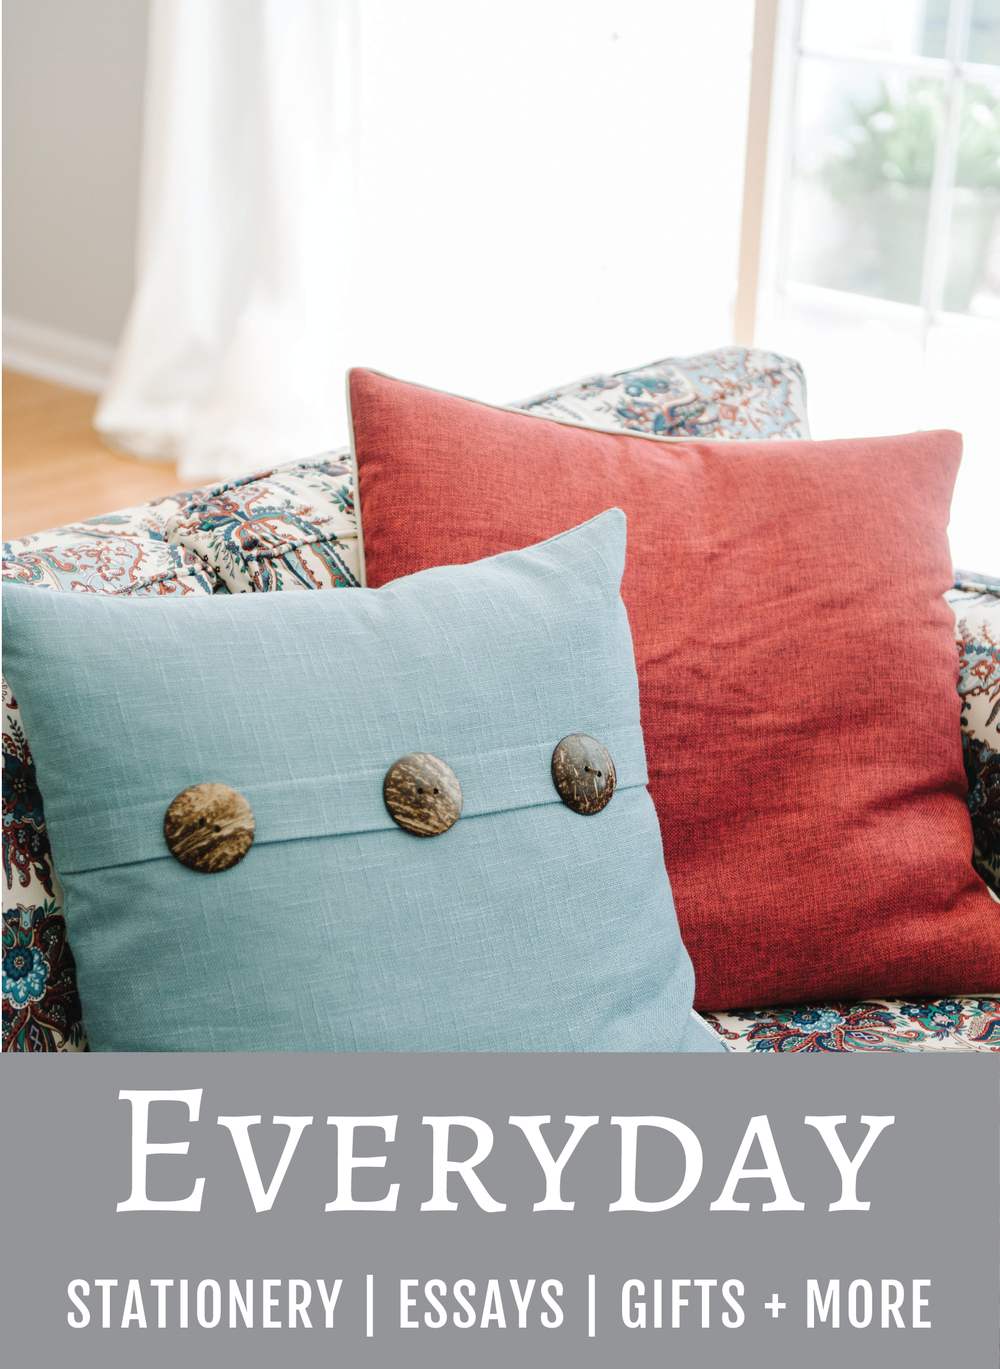 Greatest Story Everyday: Custom Gifts, Stationery, and Admissions Essay Writing